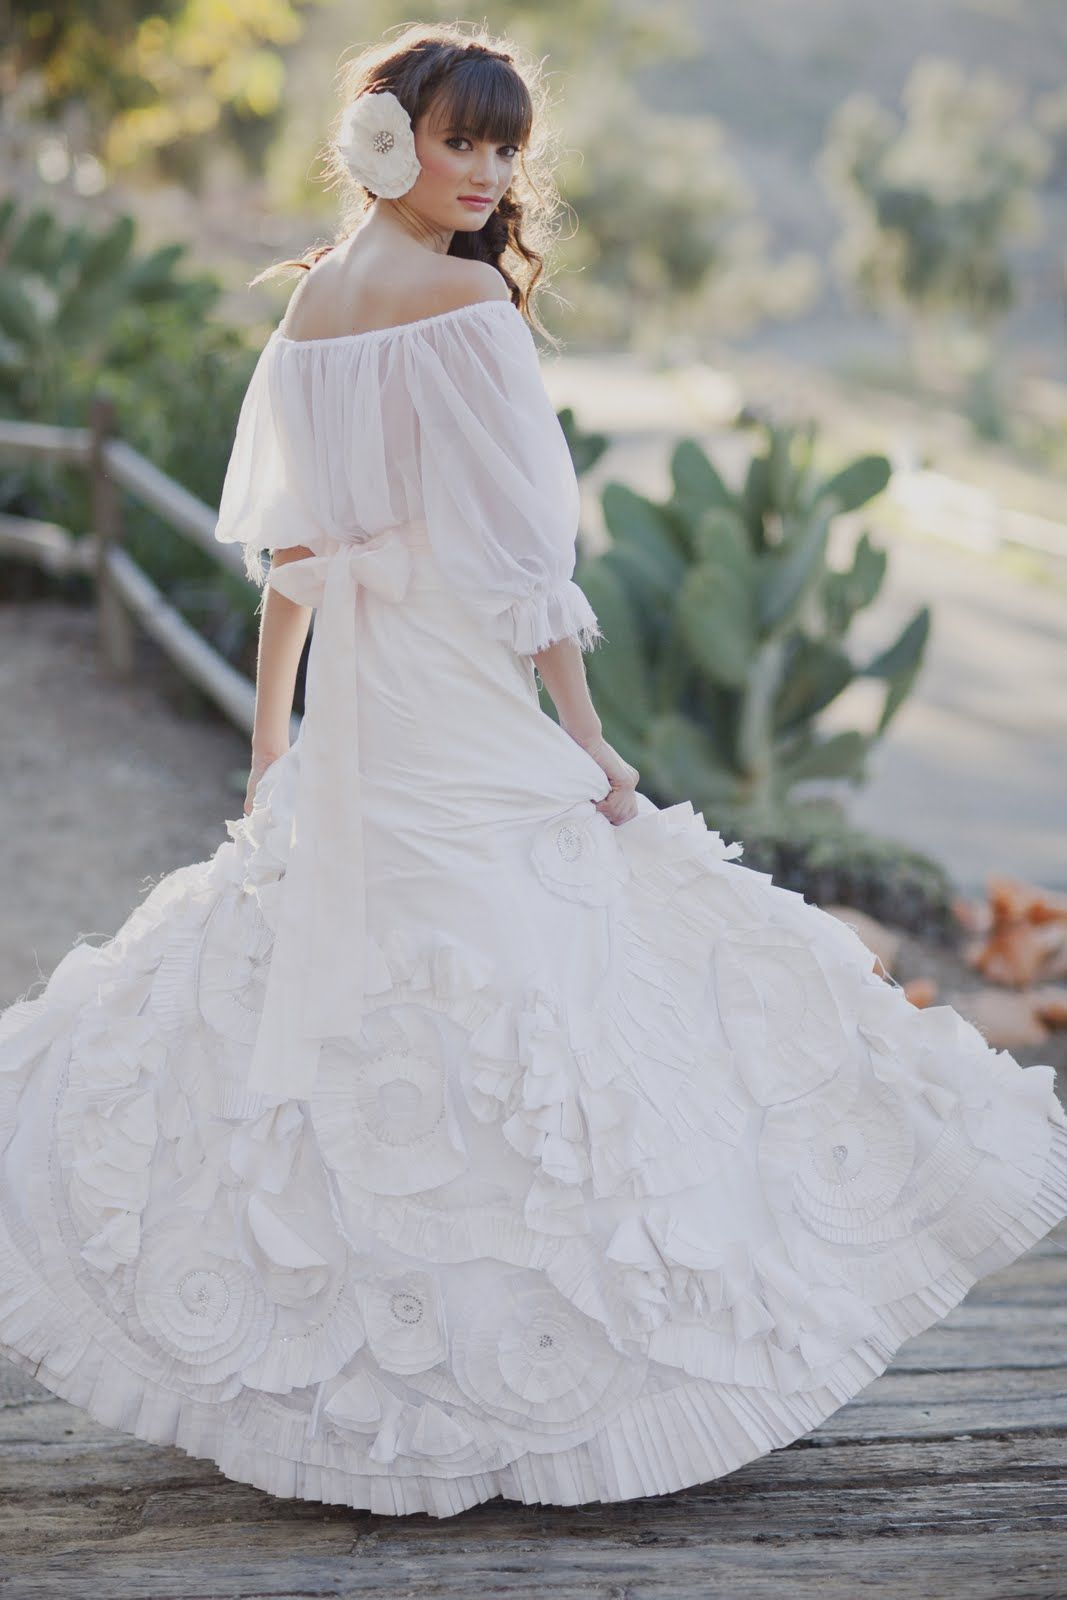 mexican style wedding dresses | Spanish Bridal Fashion with Mexican ...